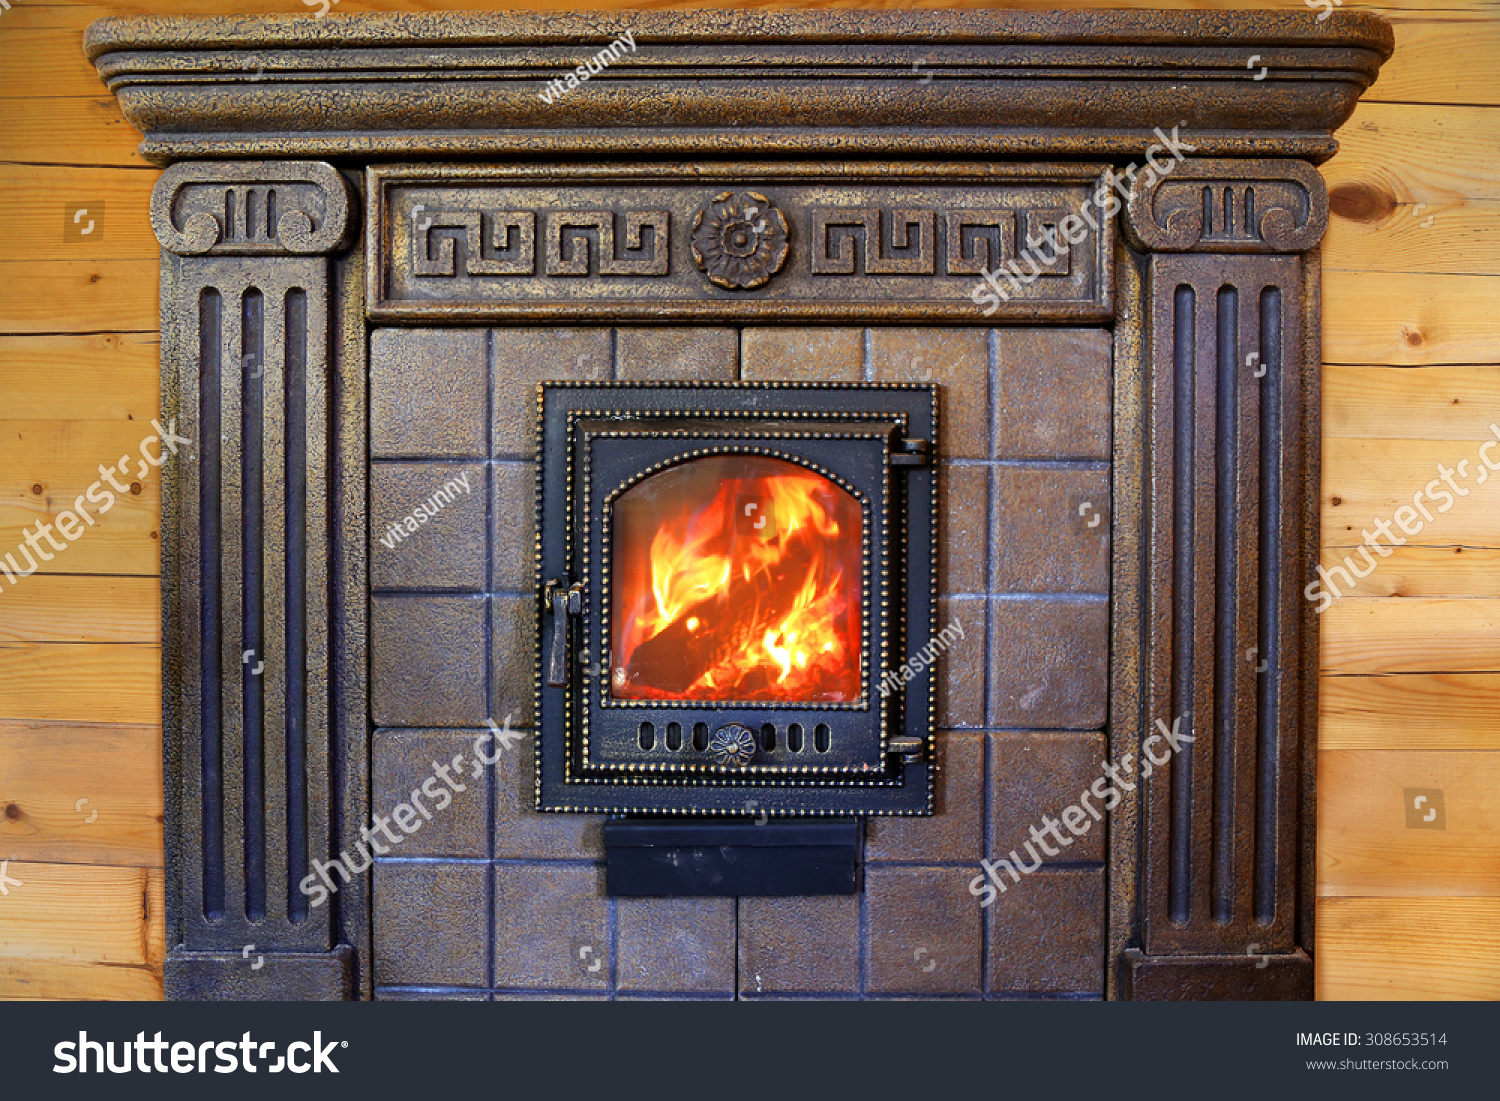 Design Burning Fireplace With Cast Iron Door Near The